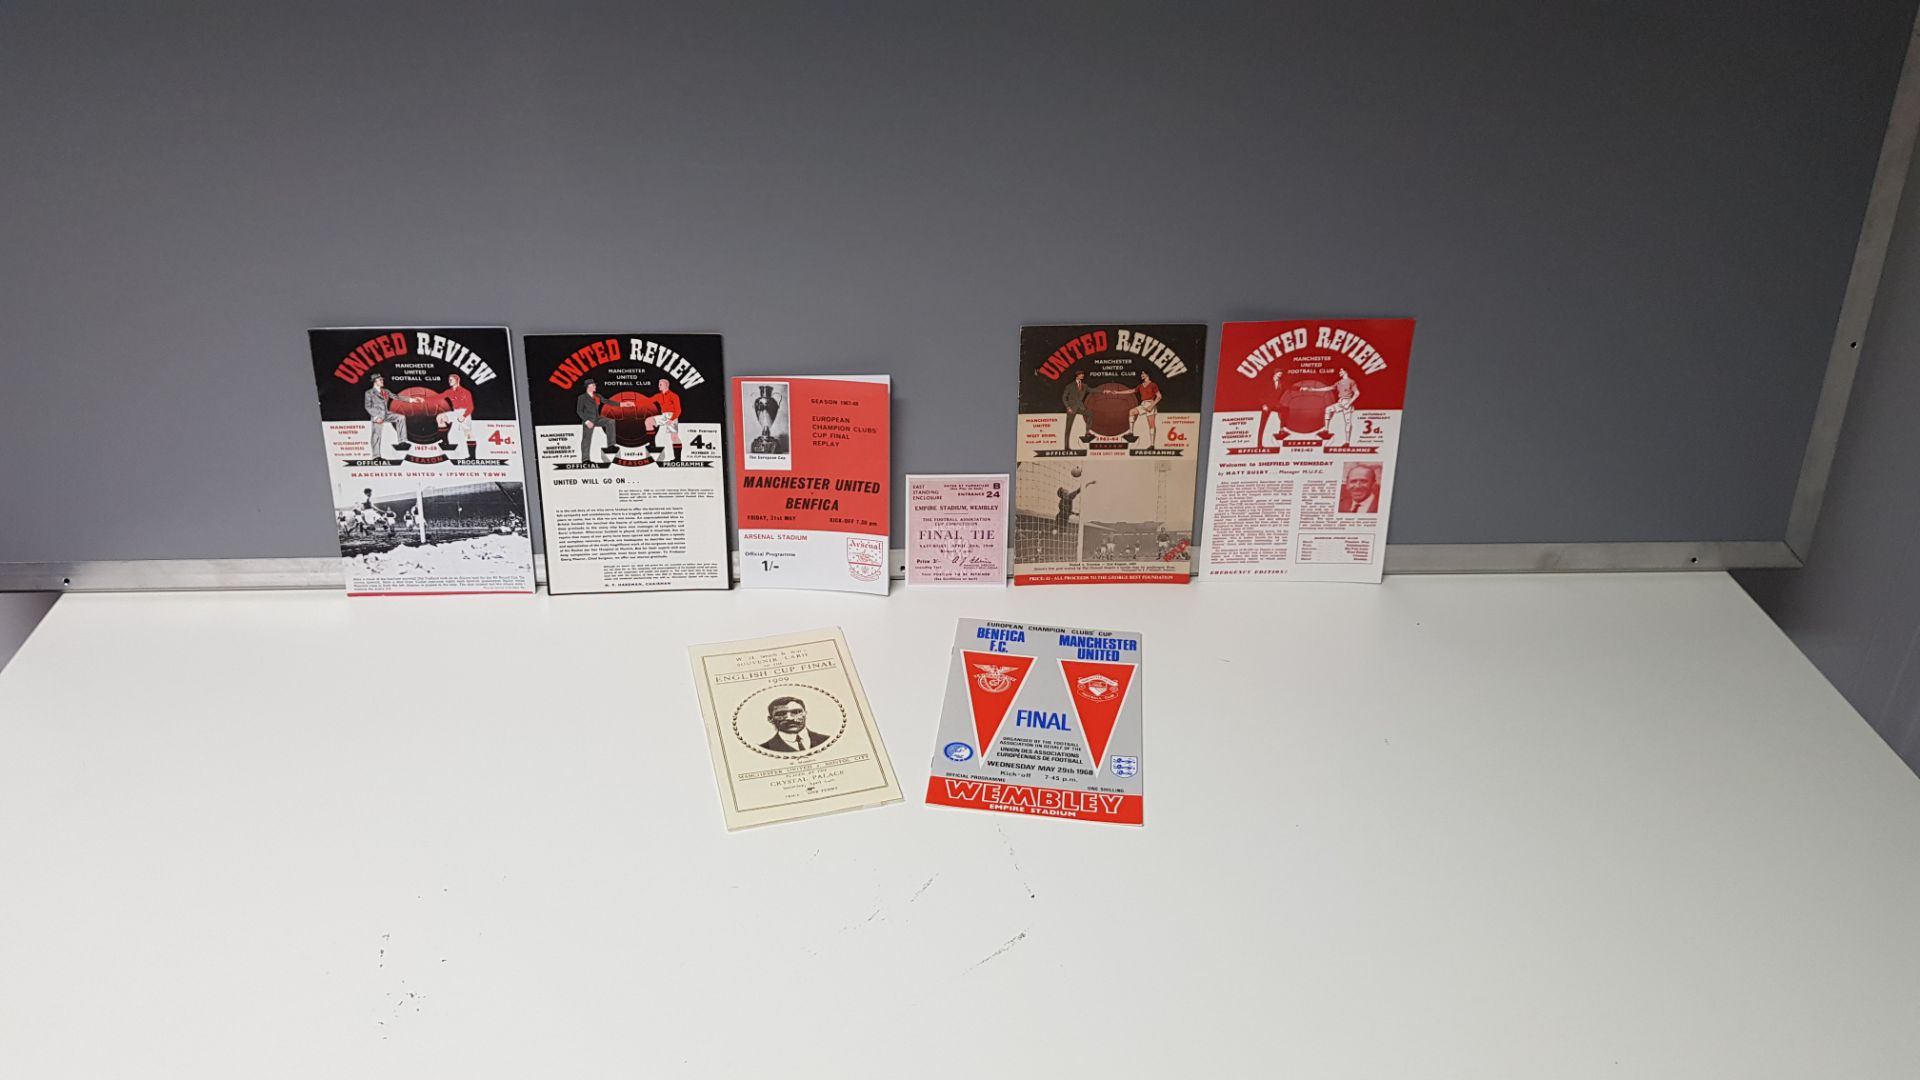 8 X REPLICA MANCHESTER UNITED PROGRAMMES #COPIES.. & 1 X COPY TICKET STUB - FURTHER INFO ON ONLINE